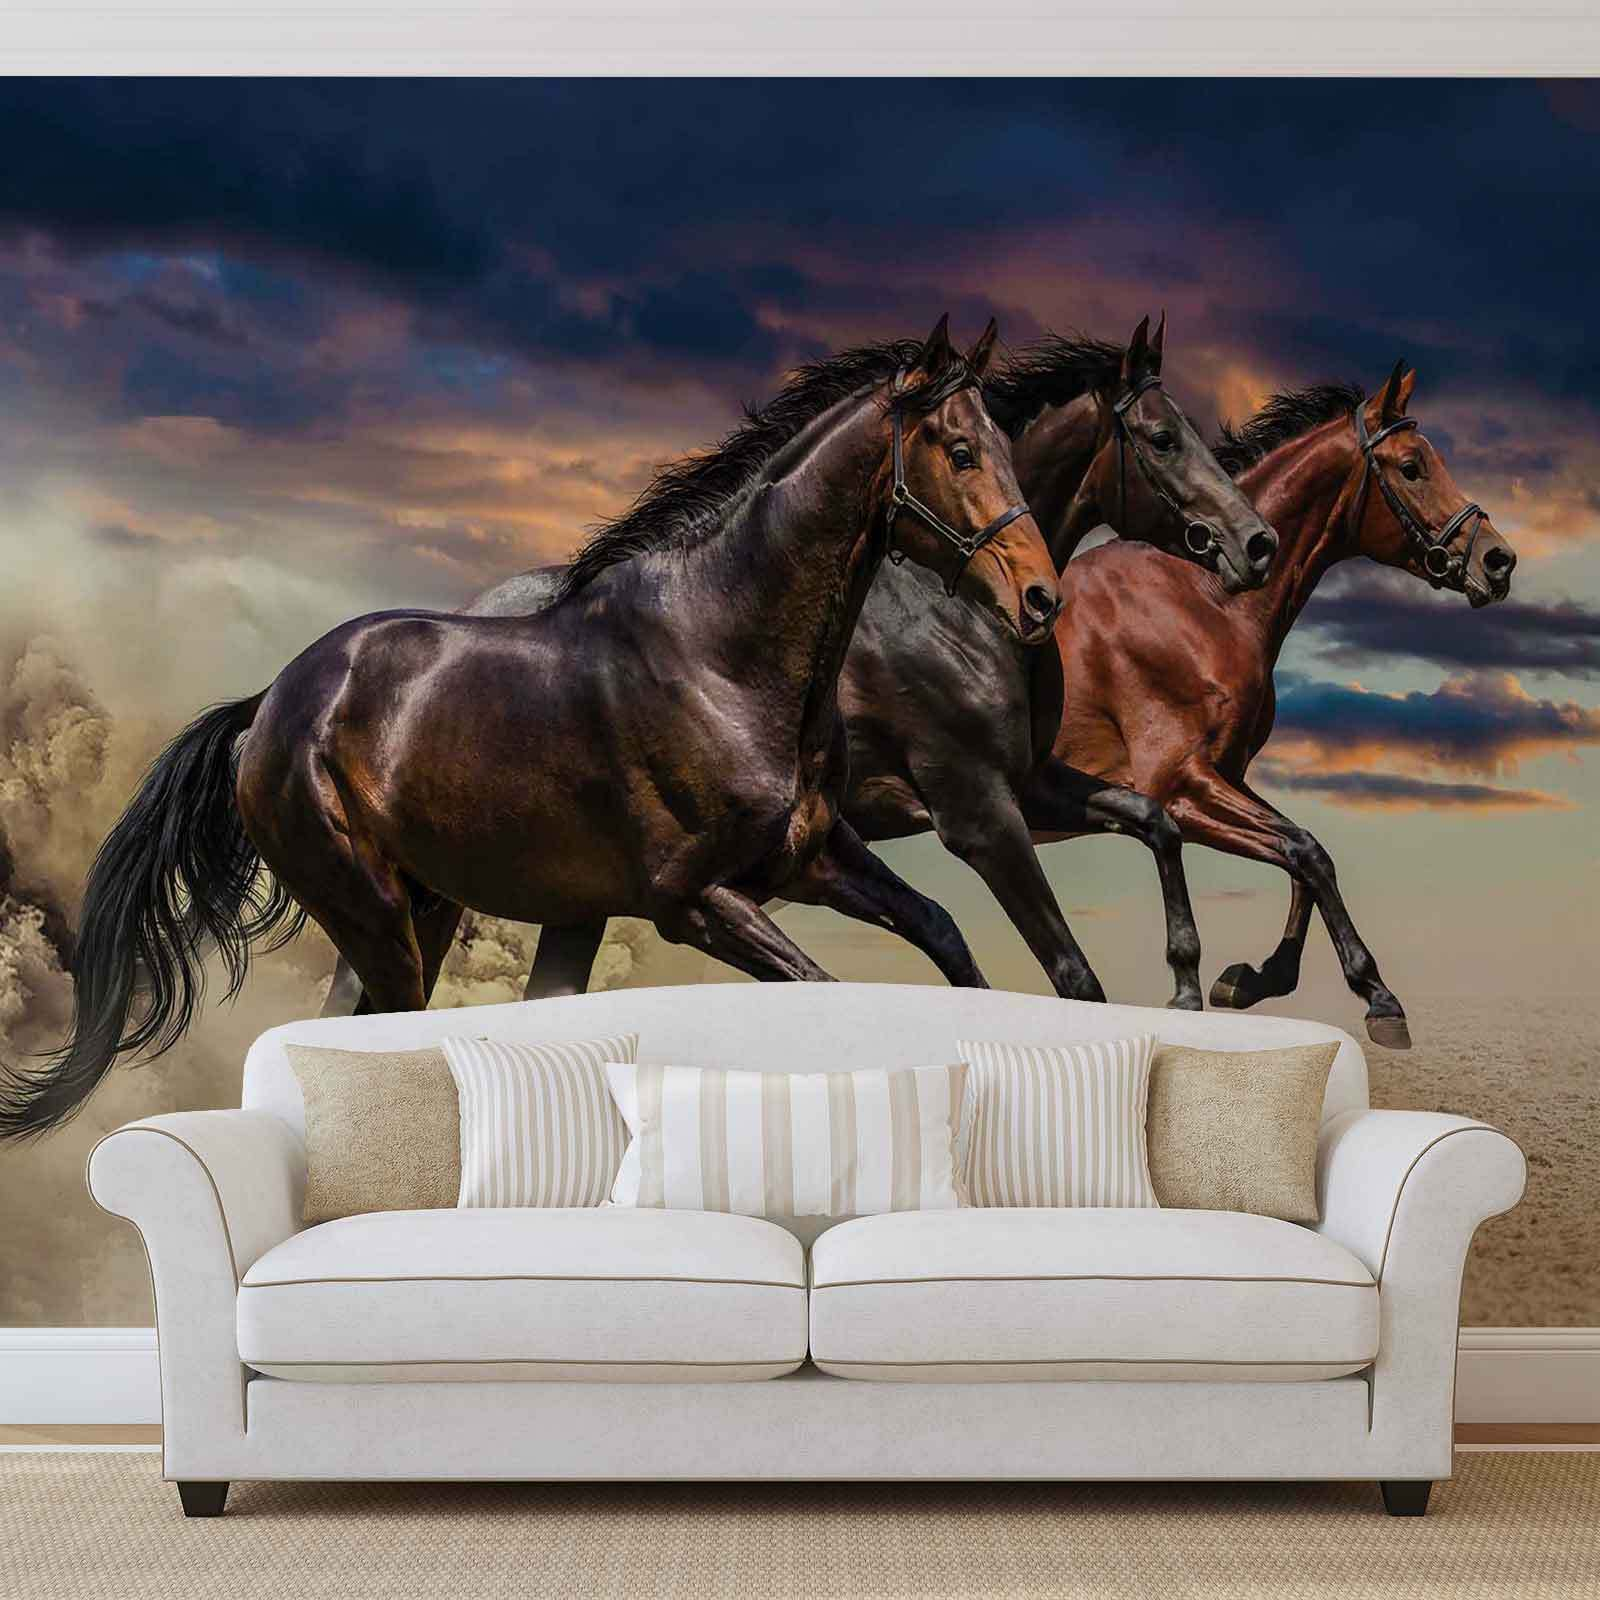 wall mural photo wallpaper xxl horse pony 1217ws cad picclick ca. Black Bedroom Furniture Sets. Home Design Ideas